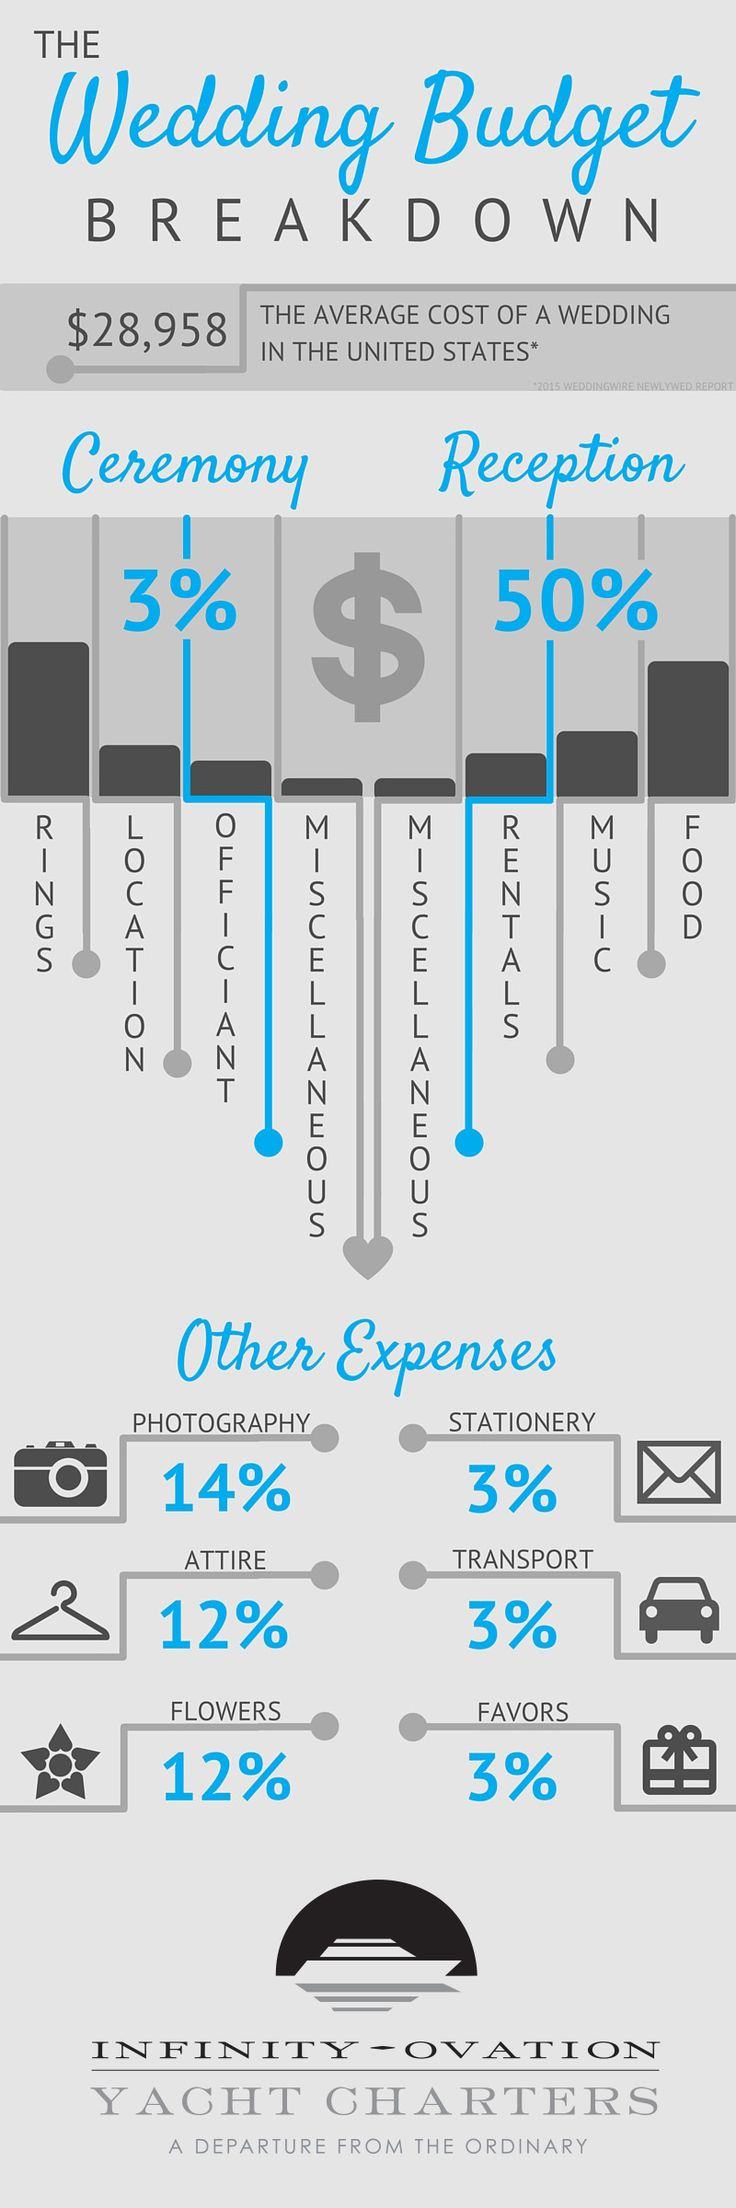 """Did you know? In wedding planning, 74% of couples go over their set budget! Don't be a statistic - FOLLOW THESE TIPS to keep your finances in order from """"Yes"""" to """"I Do""""   http://www.infinityandovation.com/the-wedding-budget-breakdown/?utm_source=Pinterest&utm_medium=cpc&utm_term=wedding_budget&utm_content=text_link&utm_campaign=promo_pin"""